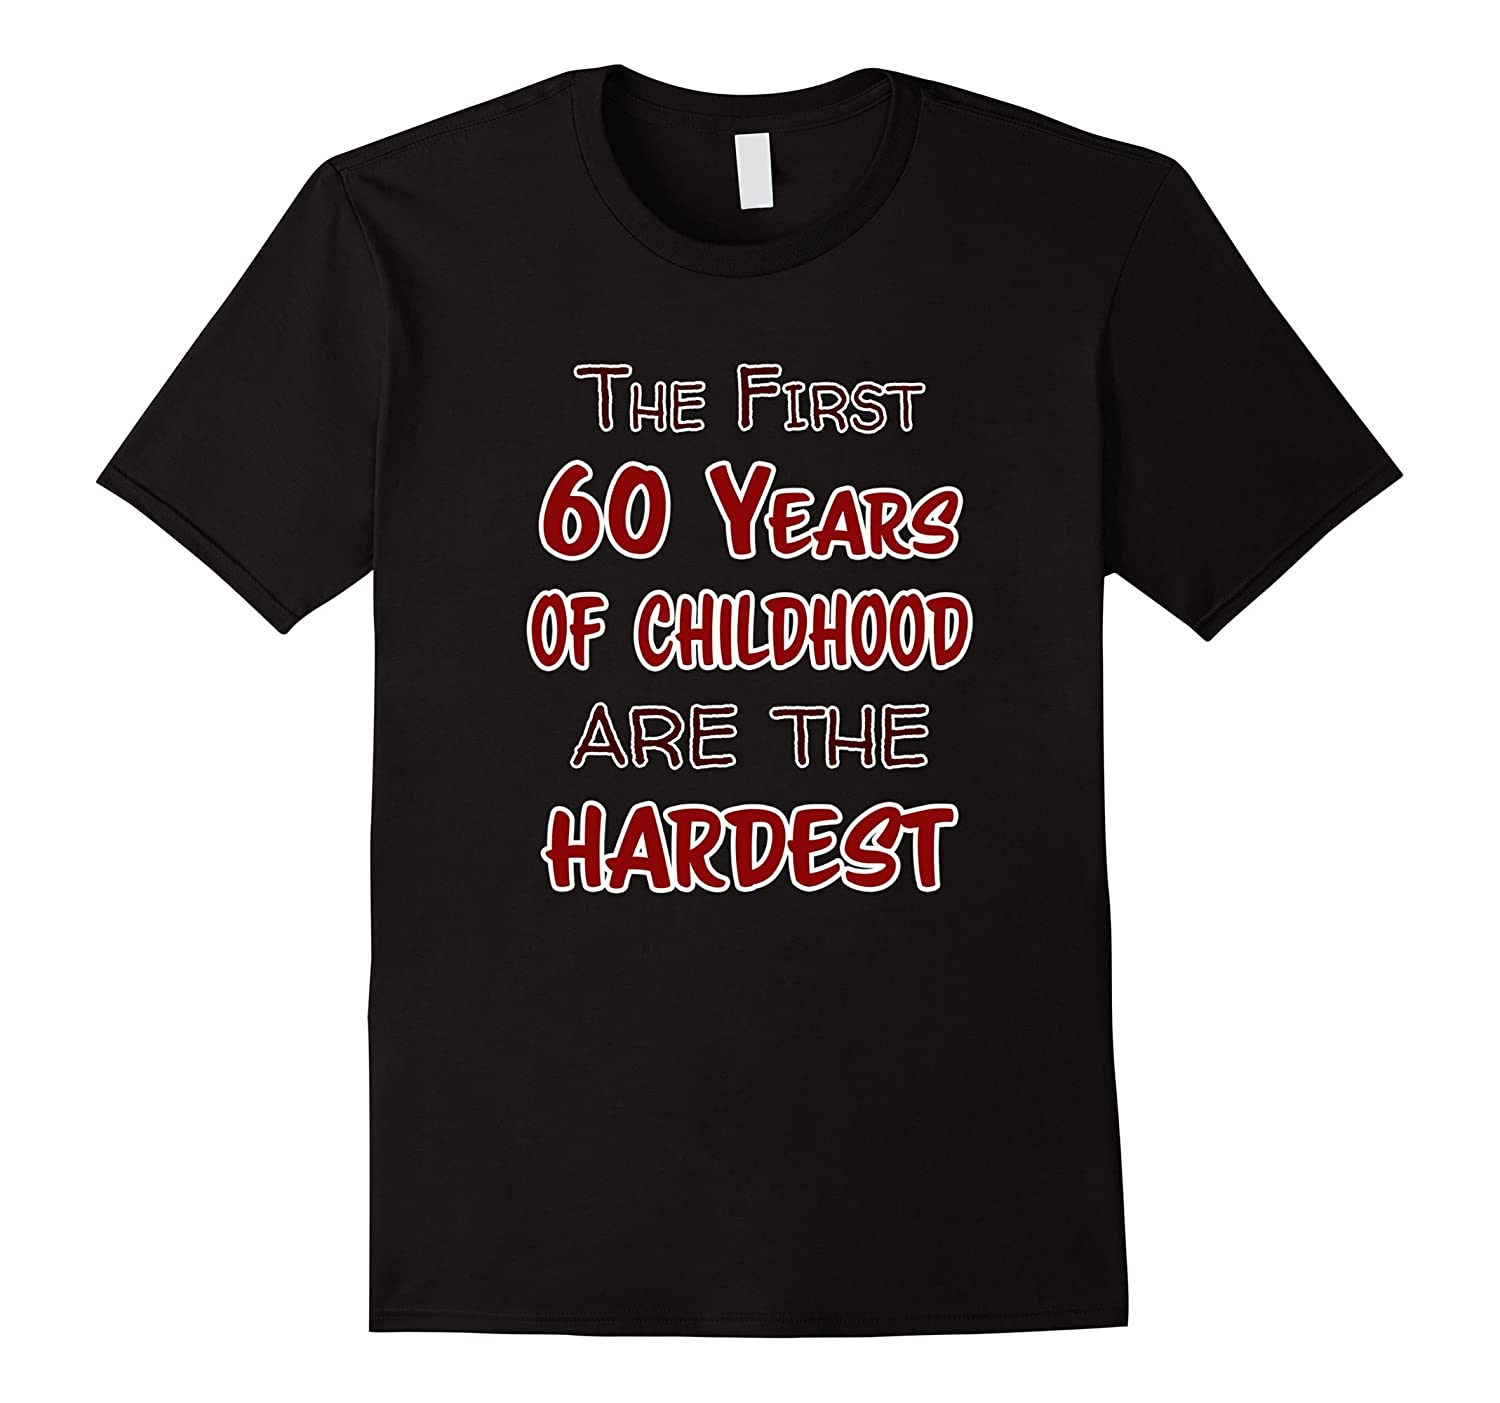 53264c458 60th Birthday T Shirt 60 Years of Childhood Hardest-FL - Sunflowershirt